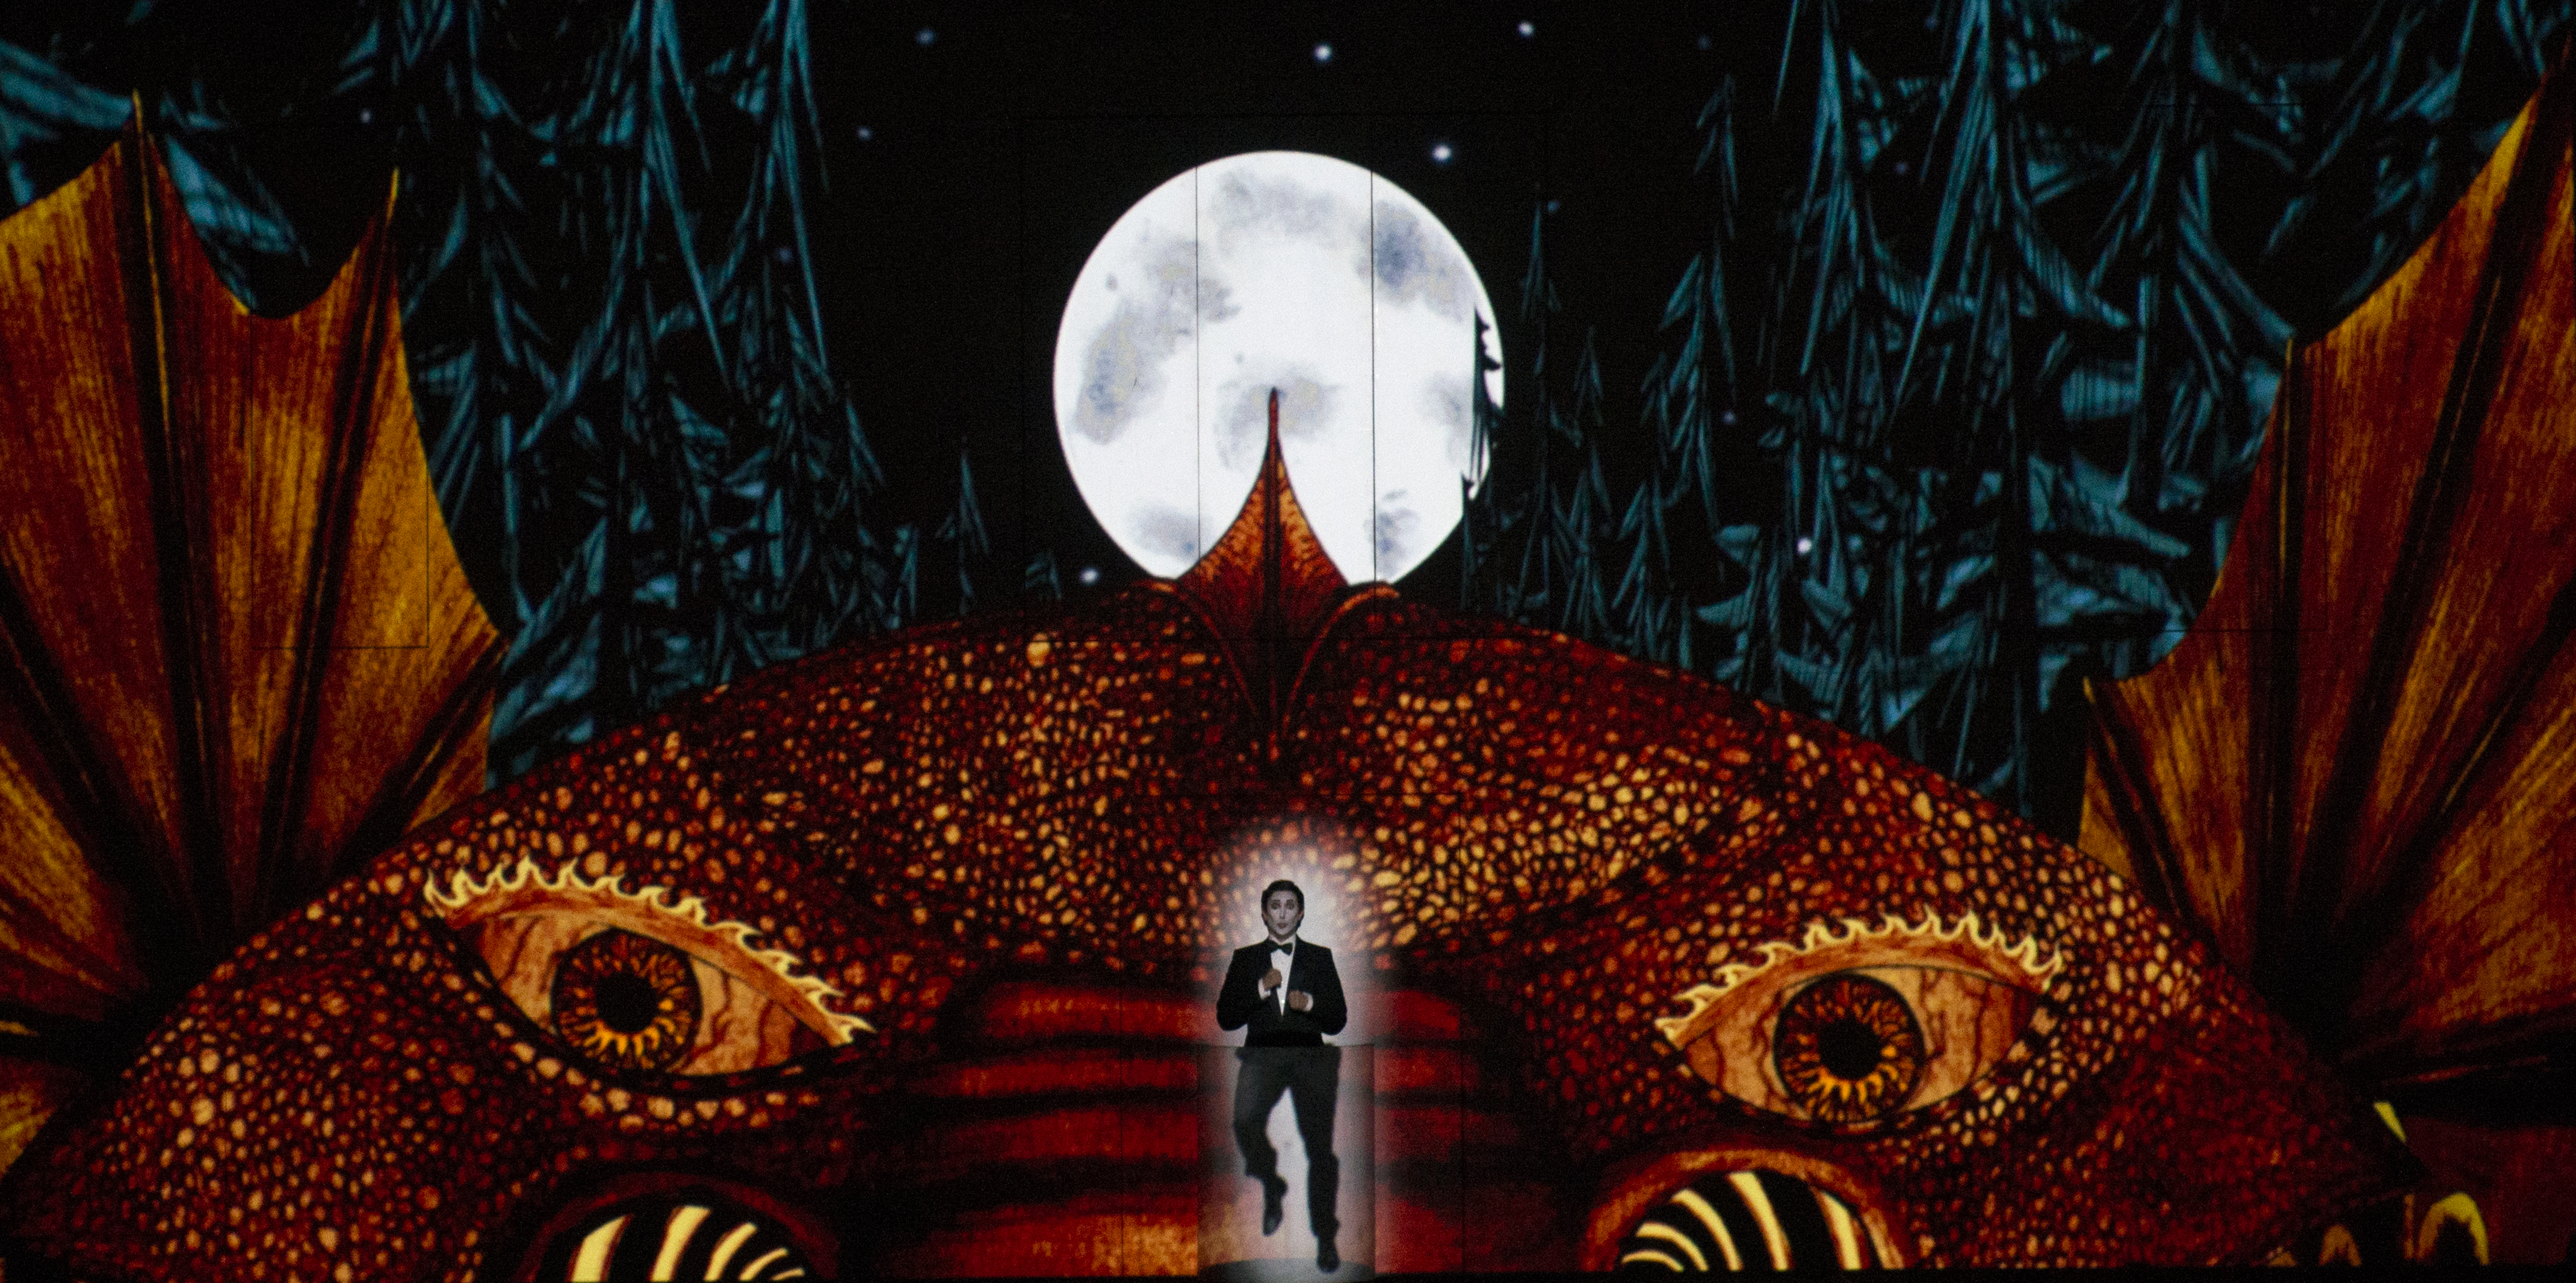 BWW Review: DIE ZAUBERFLOTE (THE MAGIC FLUTE) is a FEAST FOR THE EYES AND EARS at The Aronoff Center